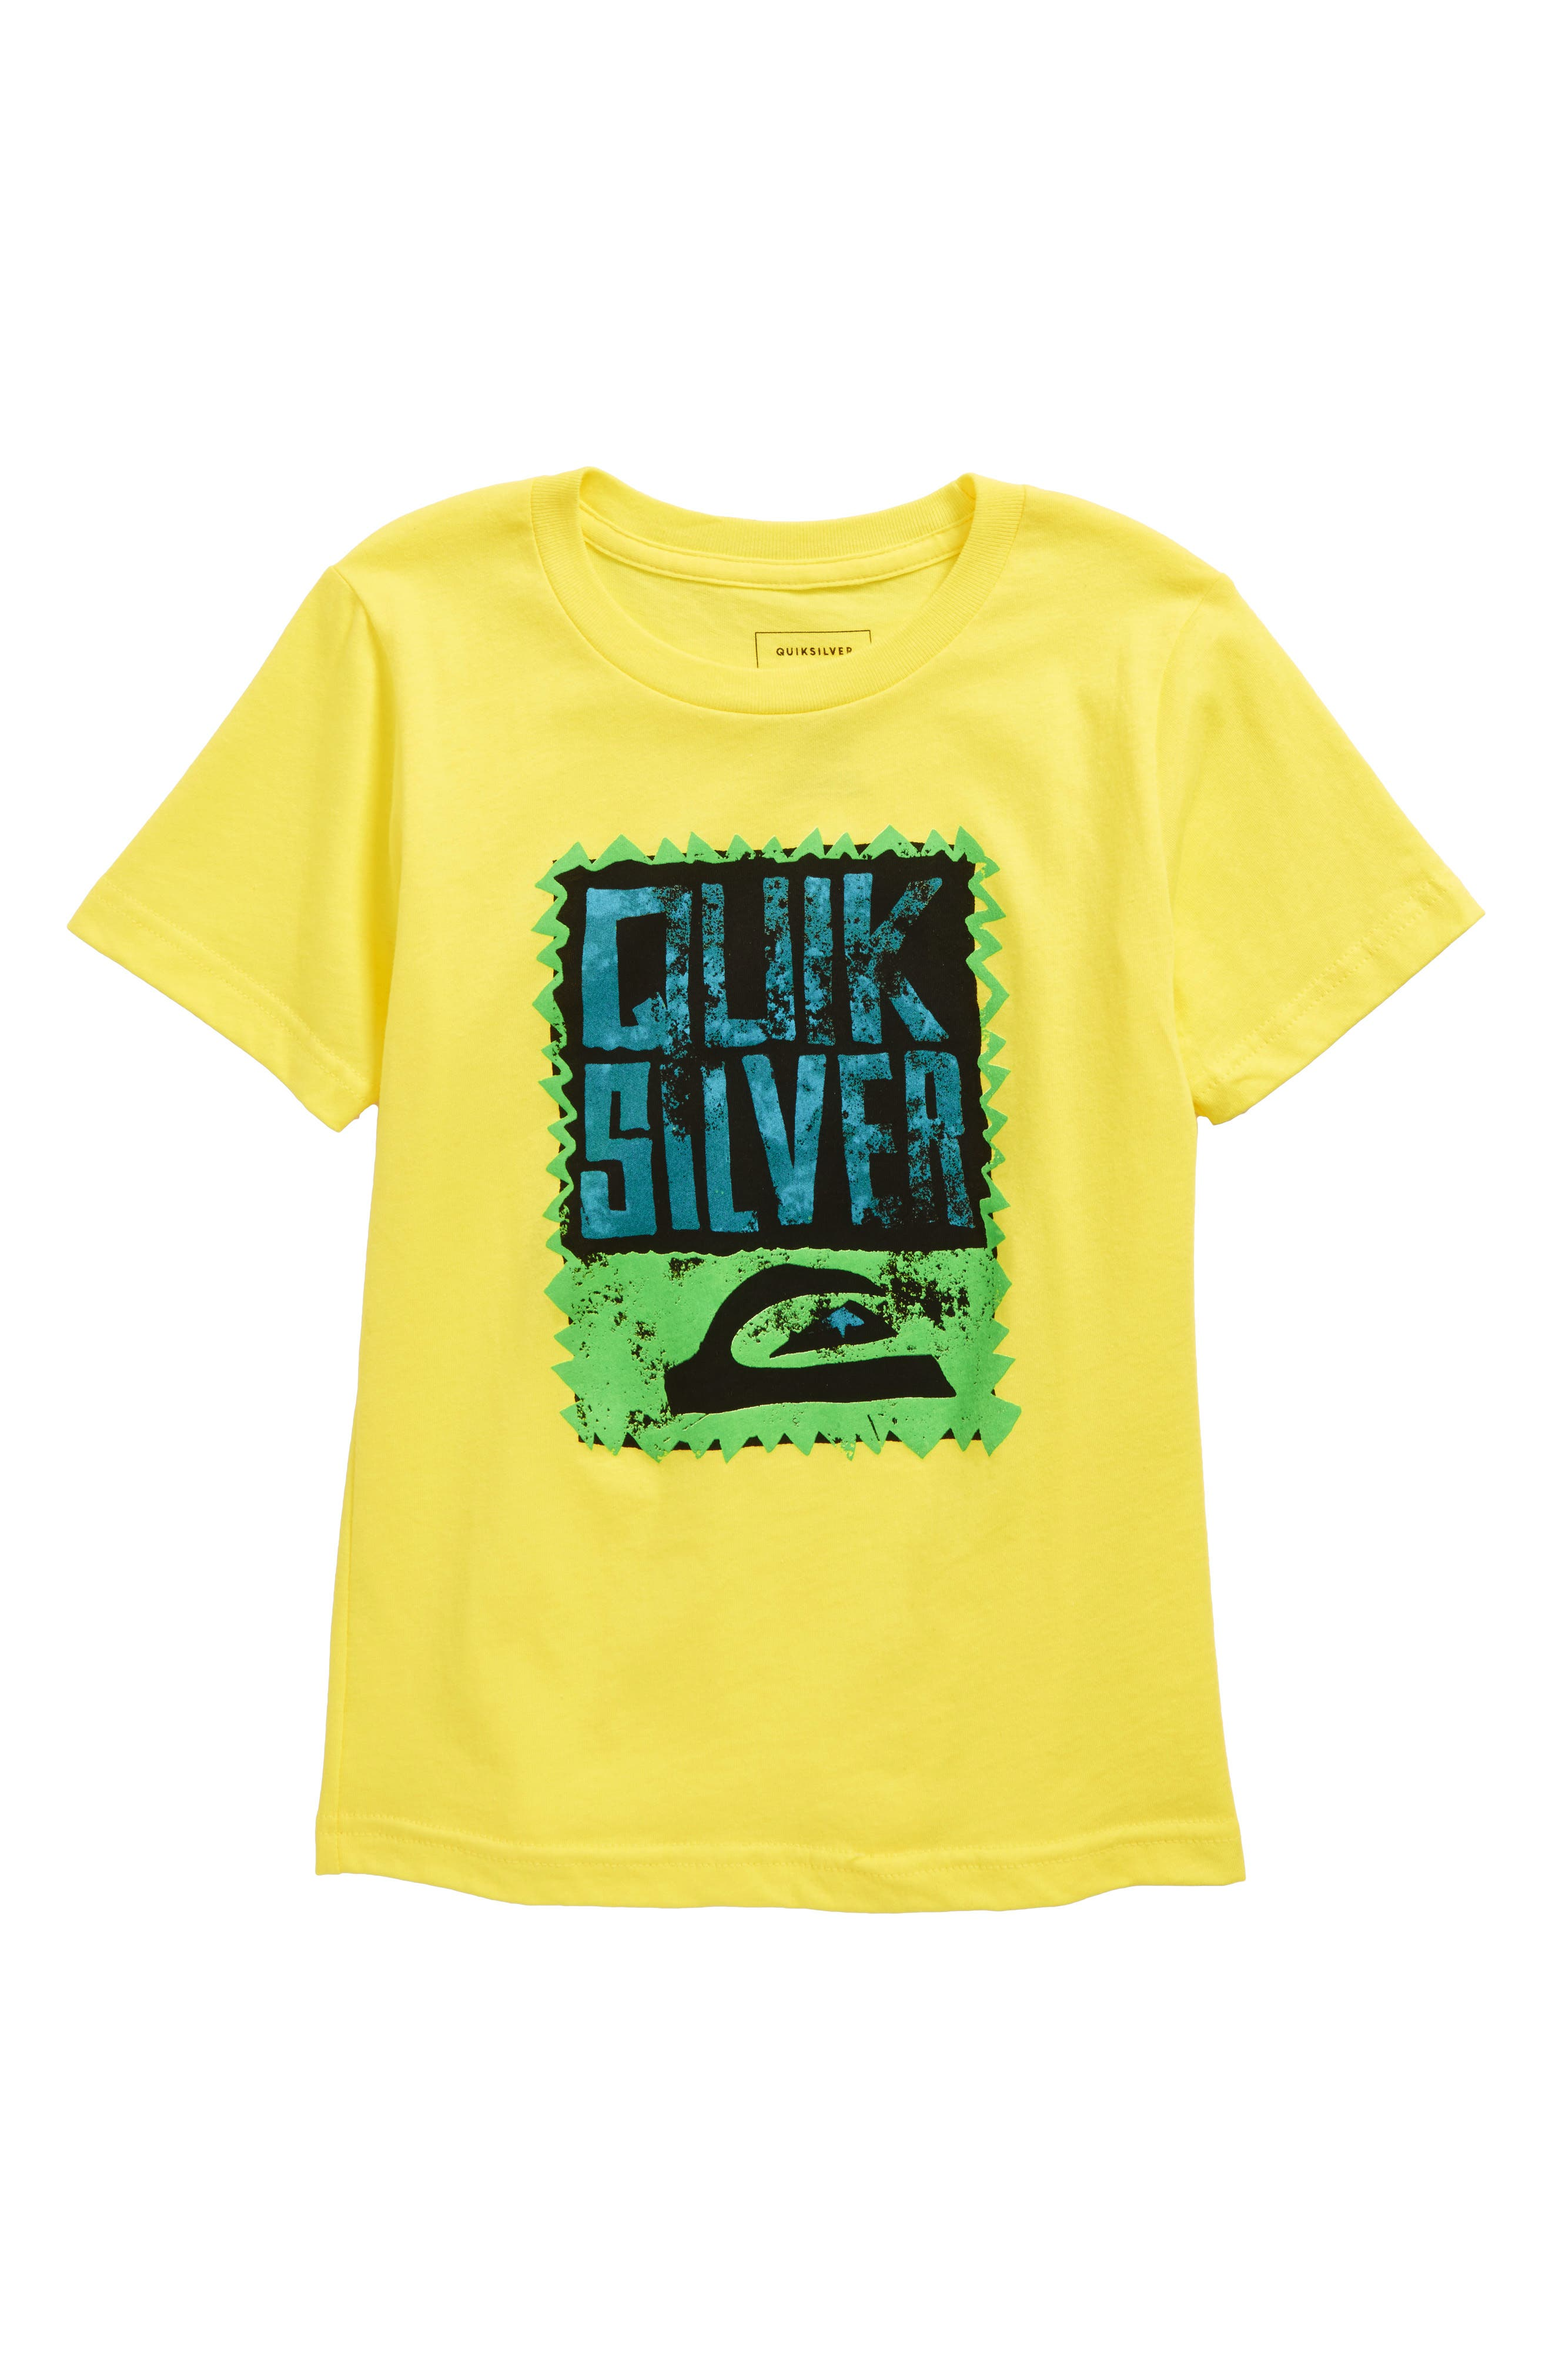 Quiksilver Awaken The Vibe Graphic T-Shirt (Toddler Boys & Little Boys)